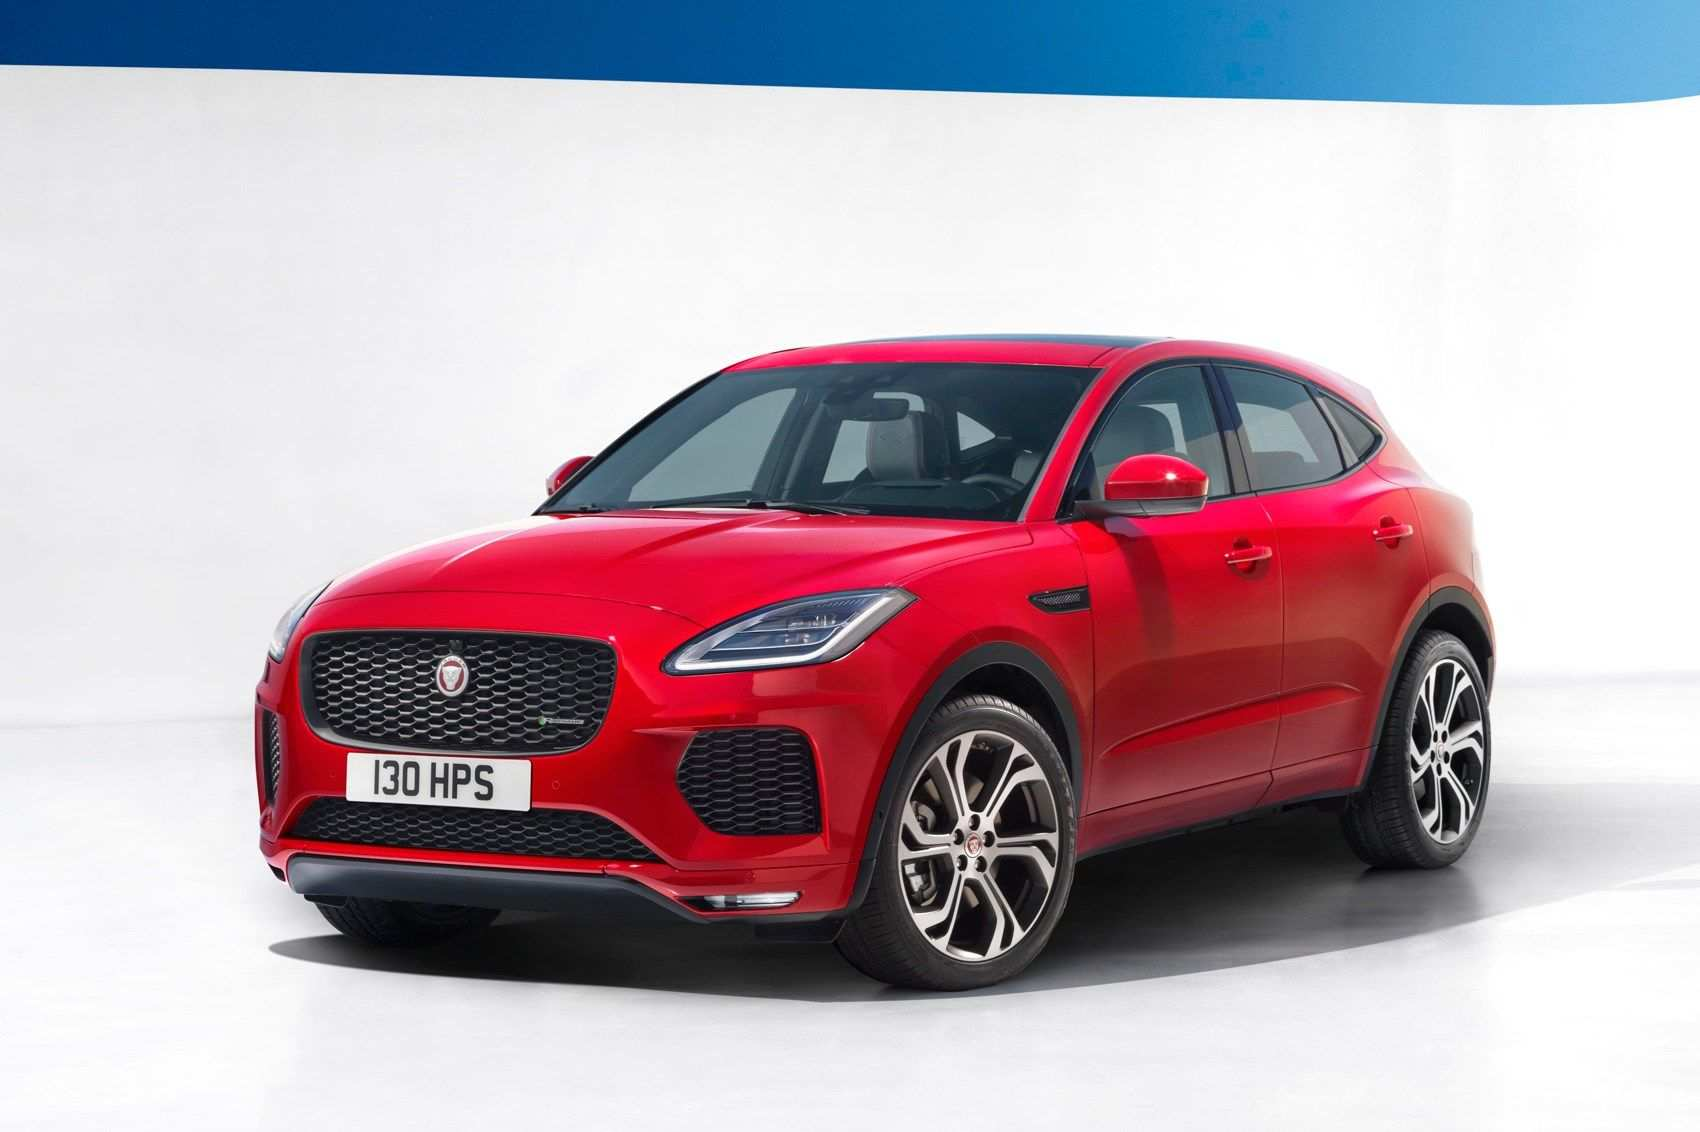 91 Gallery of Jaguar E Pace 2020 New Concept by Jaguar E Pace 2020